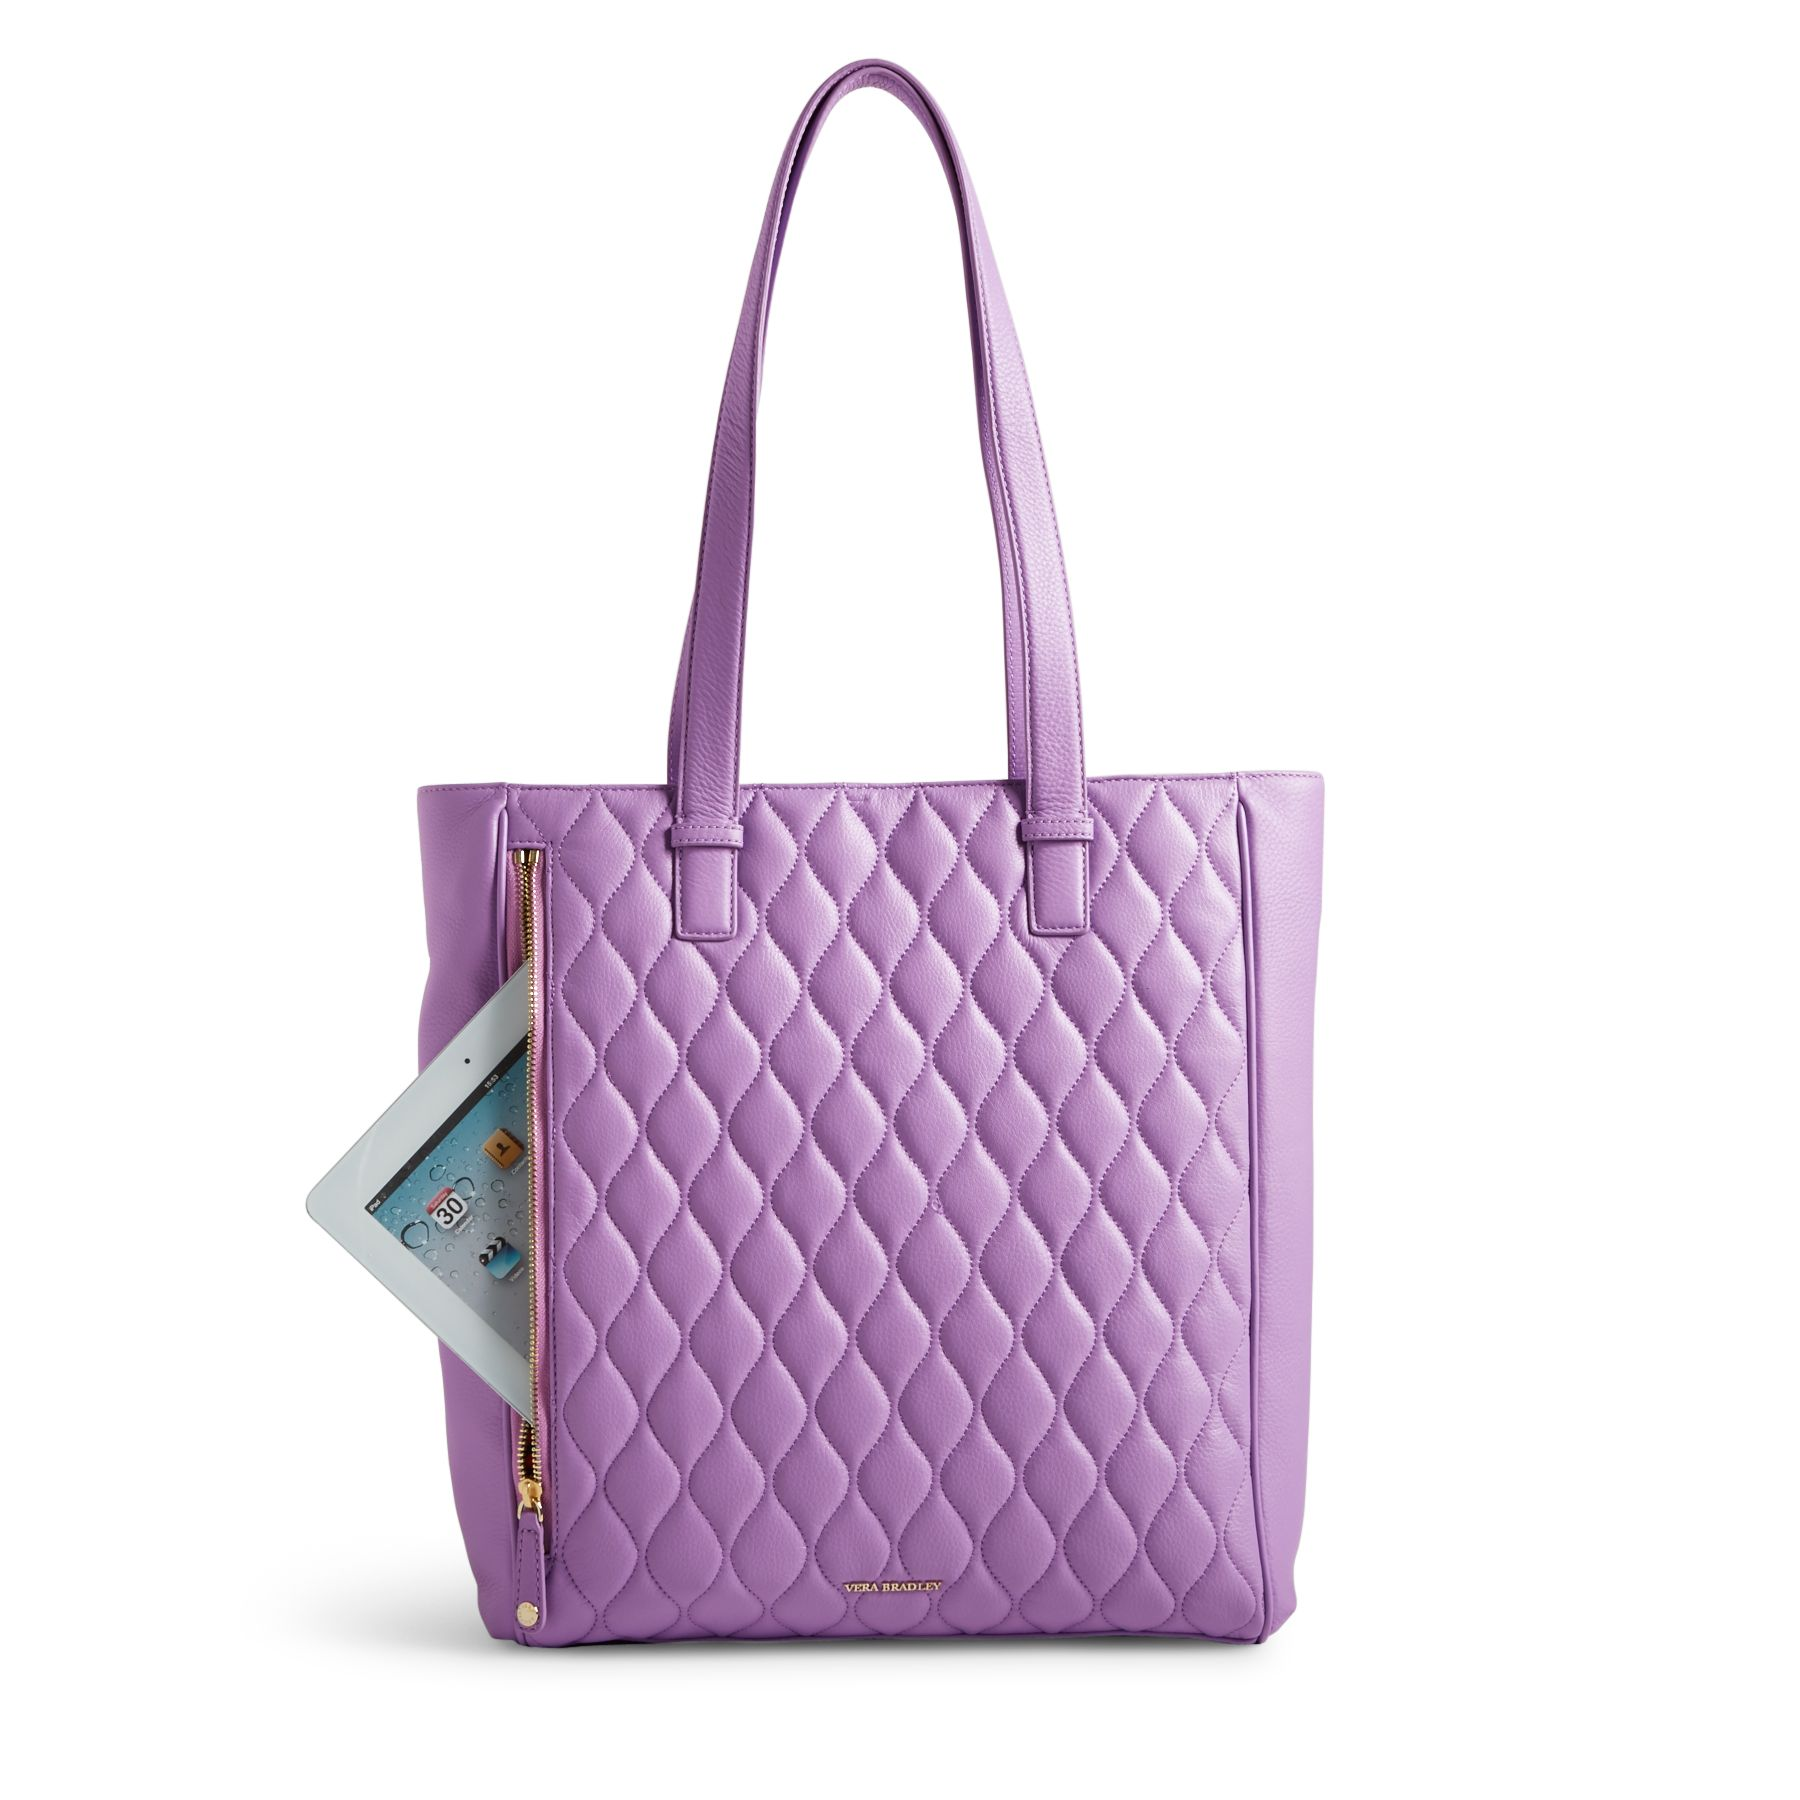 Vera Bradley Quilted Leather Leah Tote Bag Ebay